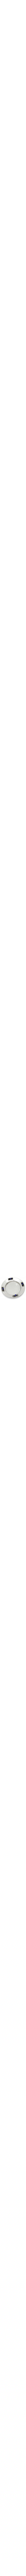 Sterling Silver plate in a modern design with inlaid semi precious stones